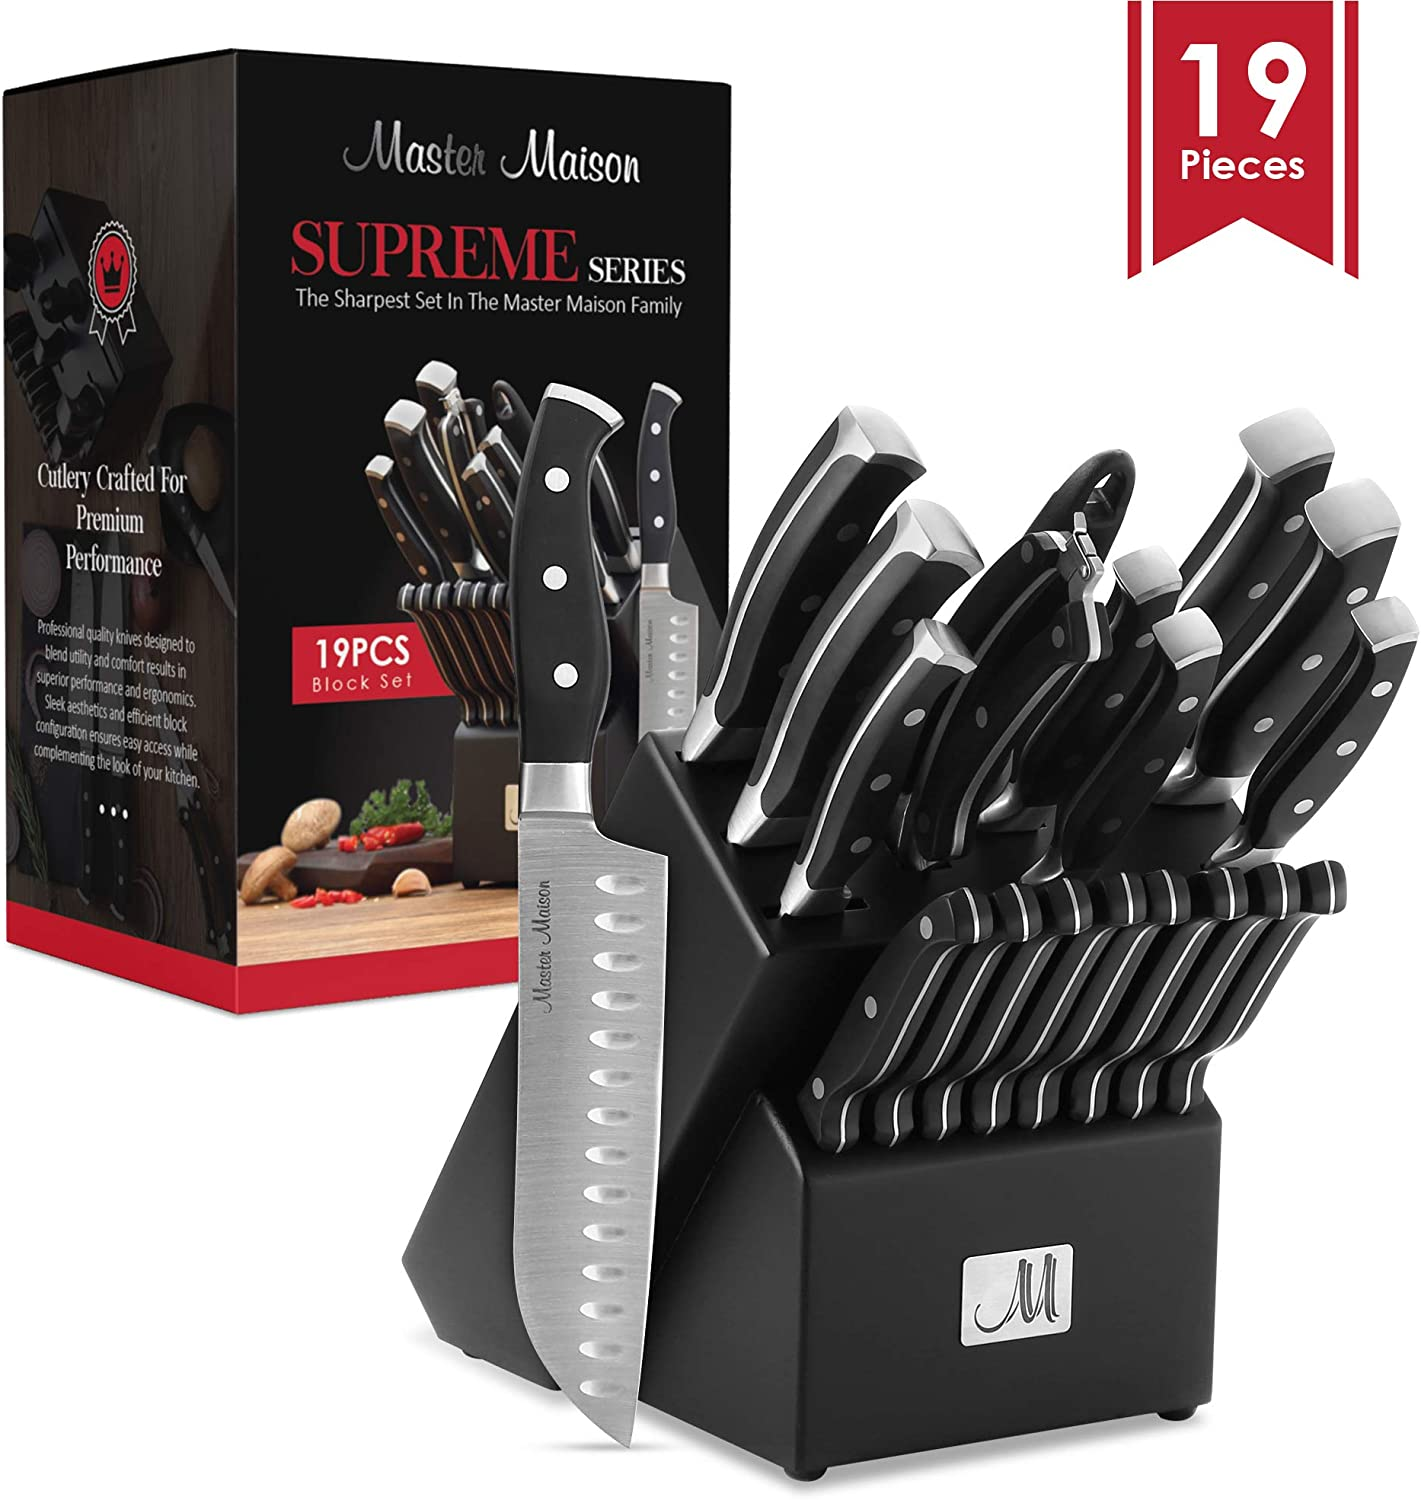 Premium Kitchen Knife Set  - Best selling Amazon Knife Block